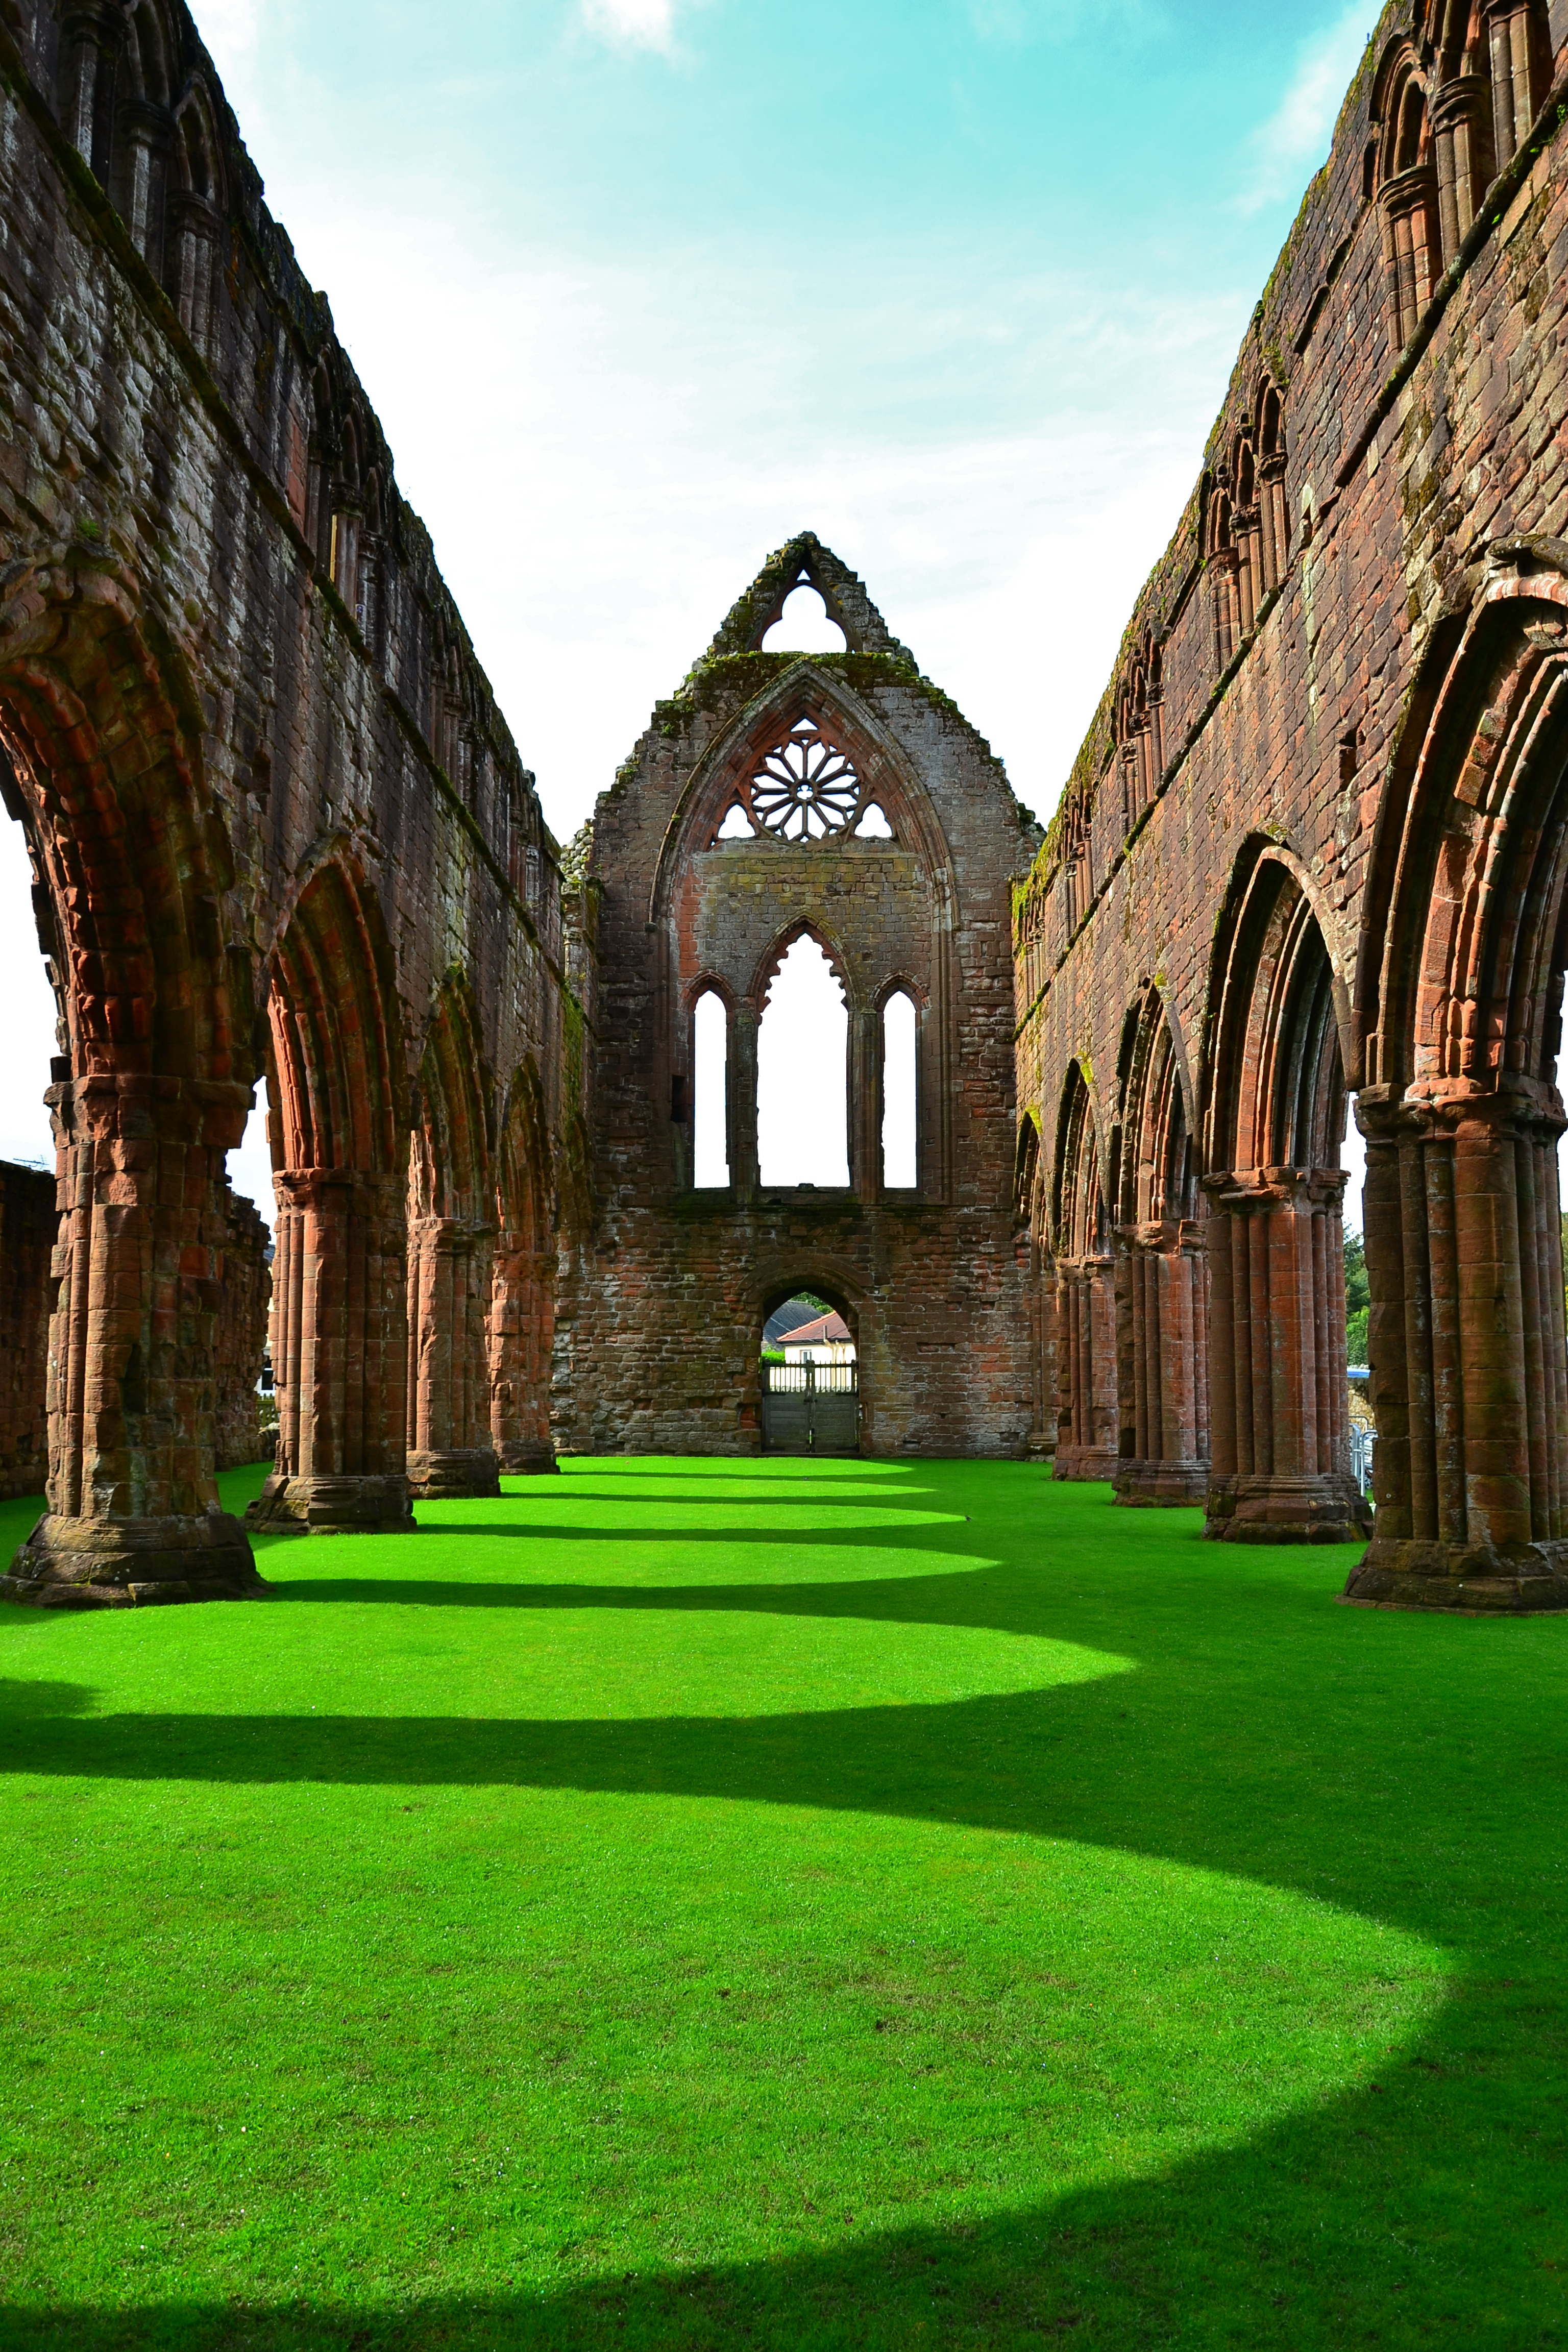 Sweetheart Abbey The Borders and the Southwest, Sweetheart Abbey #Scotland, where the grass is always greener ...